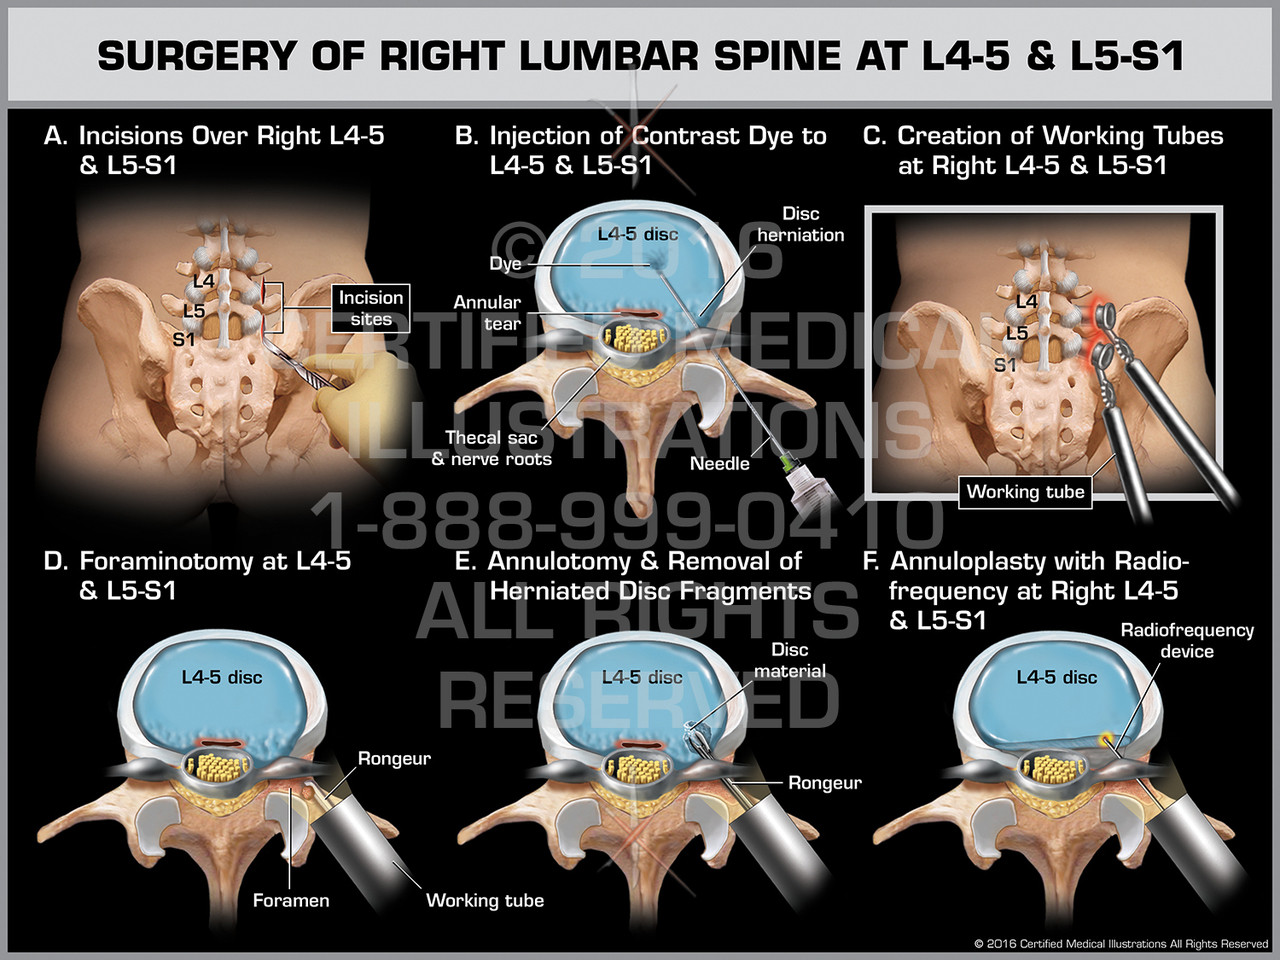 Surgery of Right Lumbar Spine at L4-5 & L5-S1 - Print Quality Instant  Download